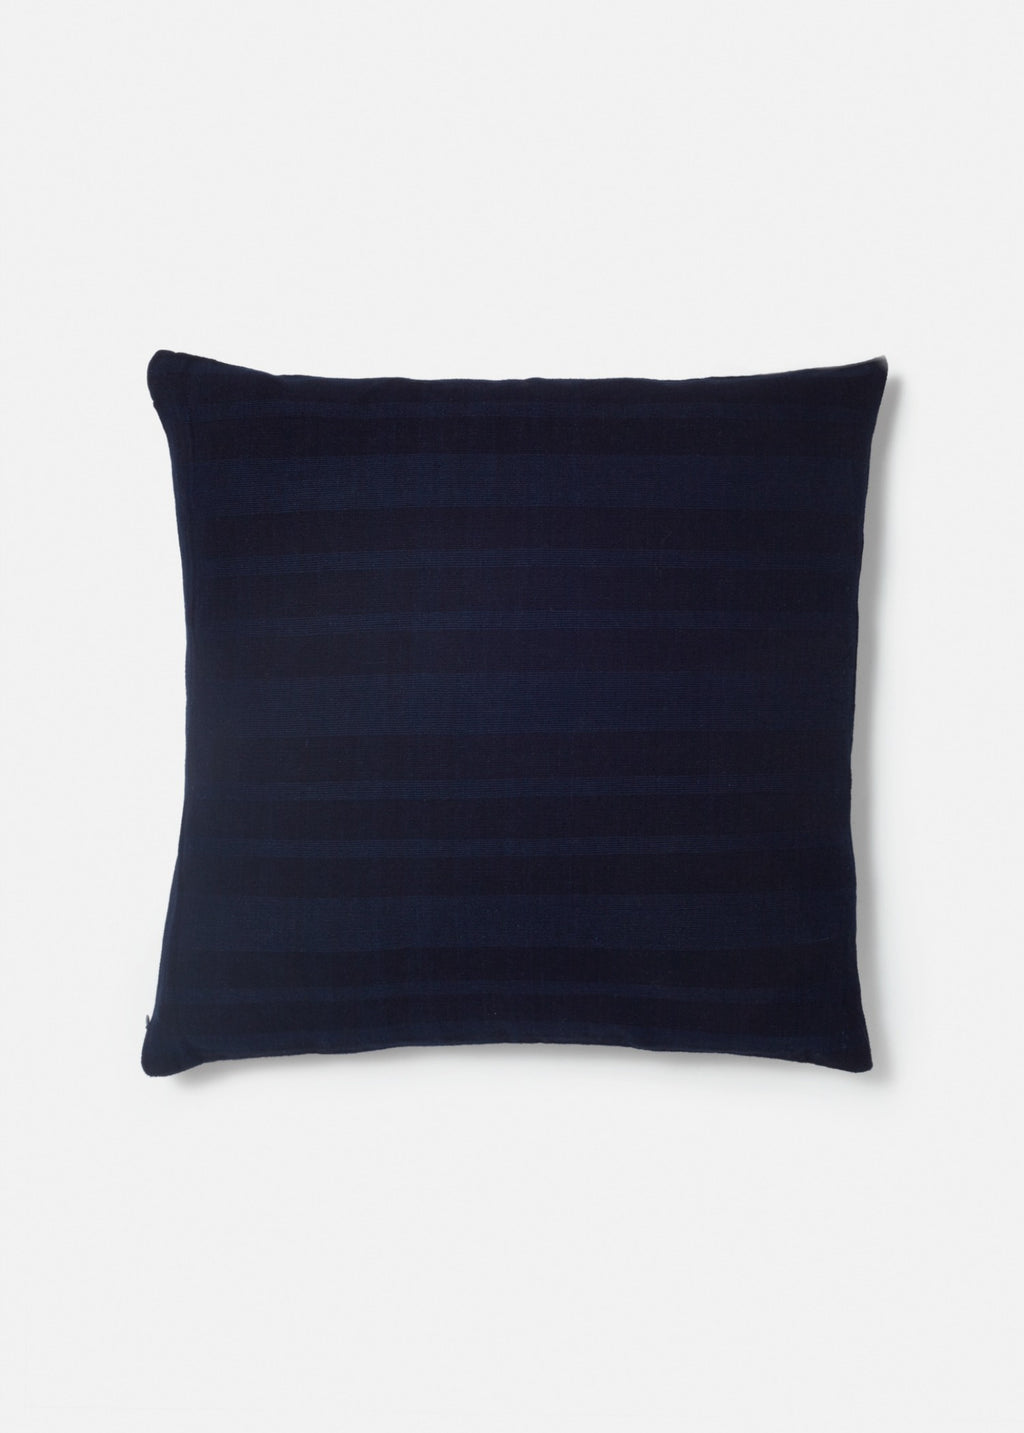 Bundle Indigo Pillows - YUYU Sustainable Home Goods